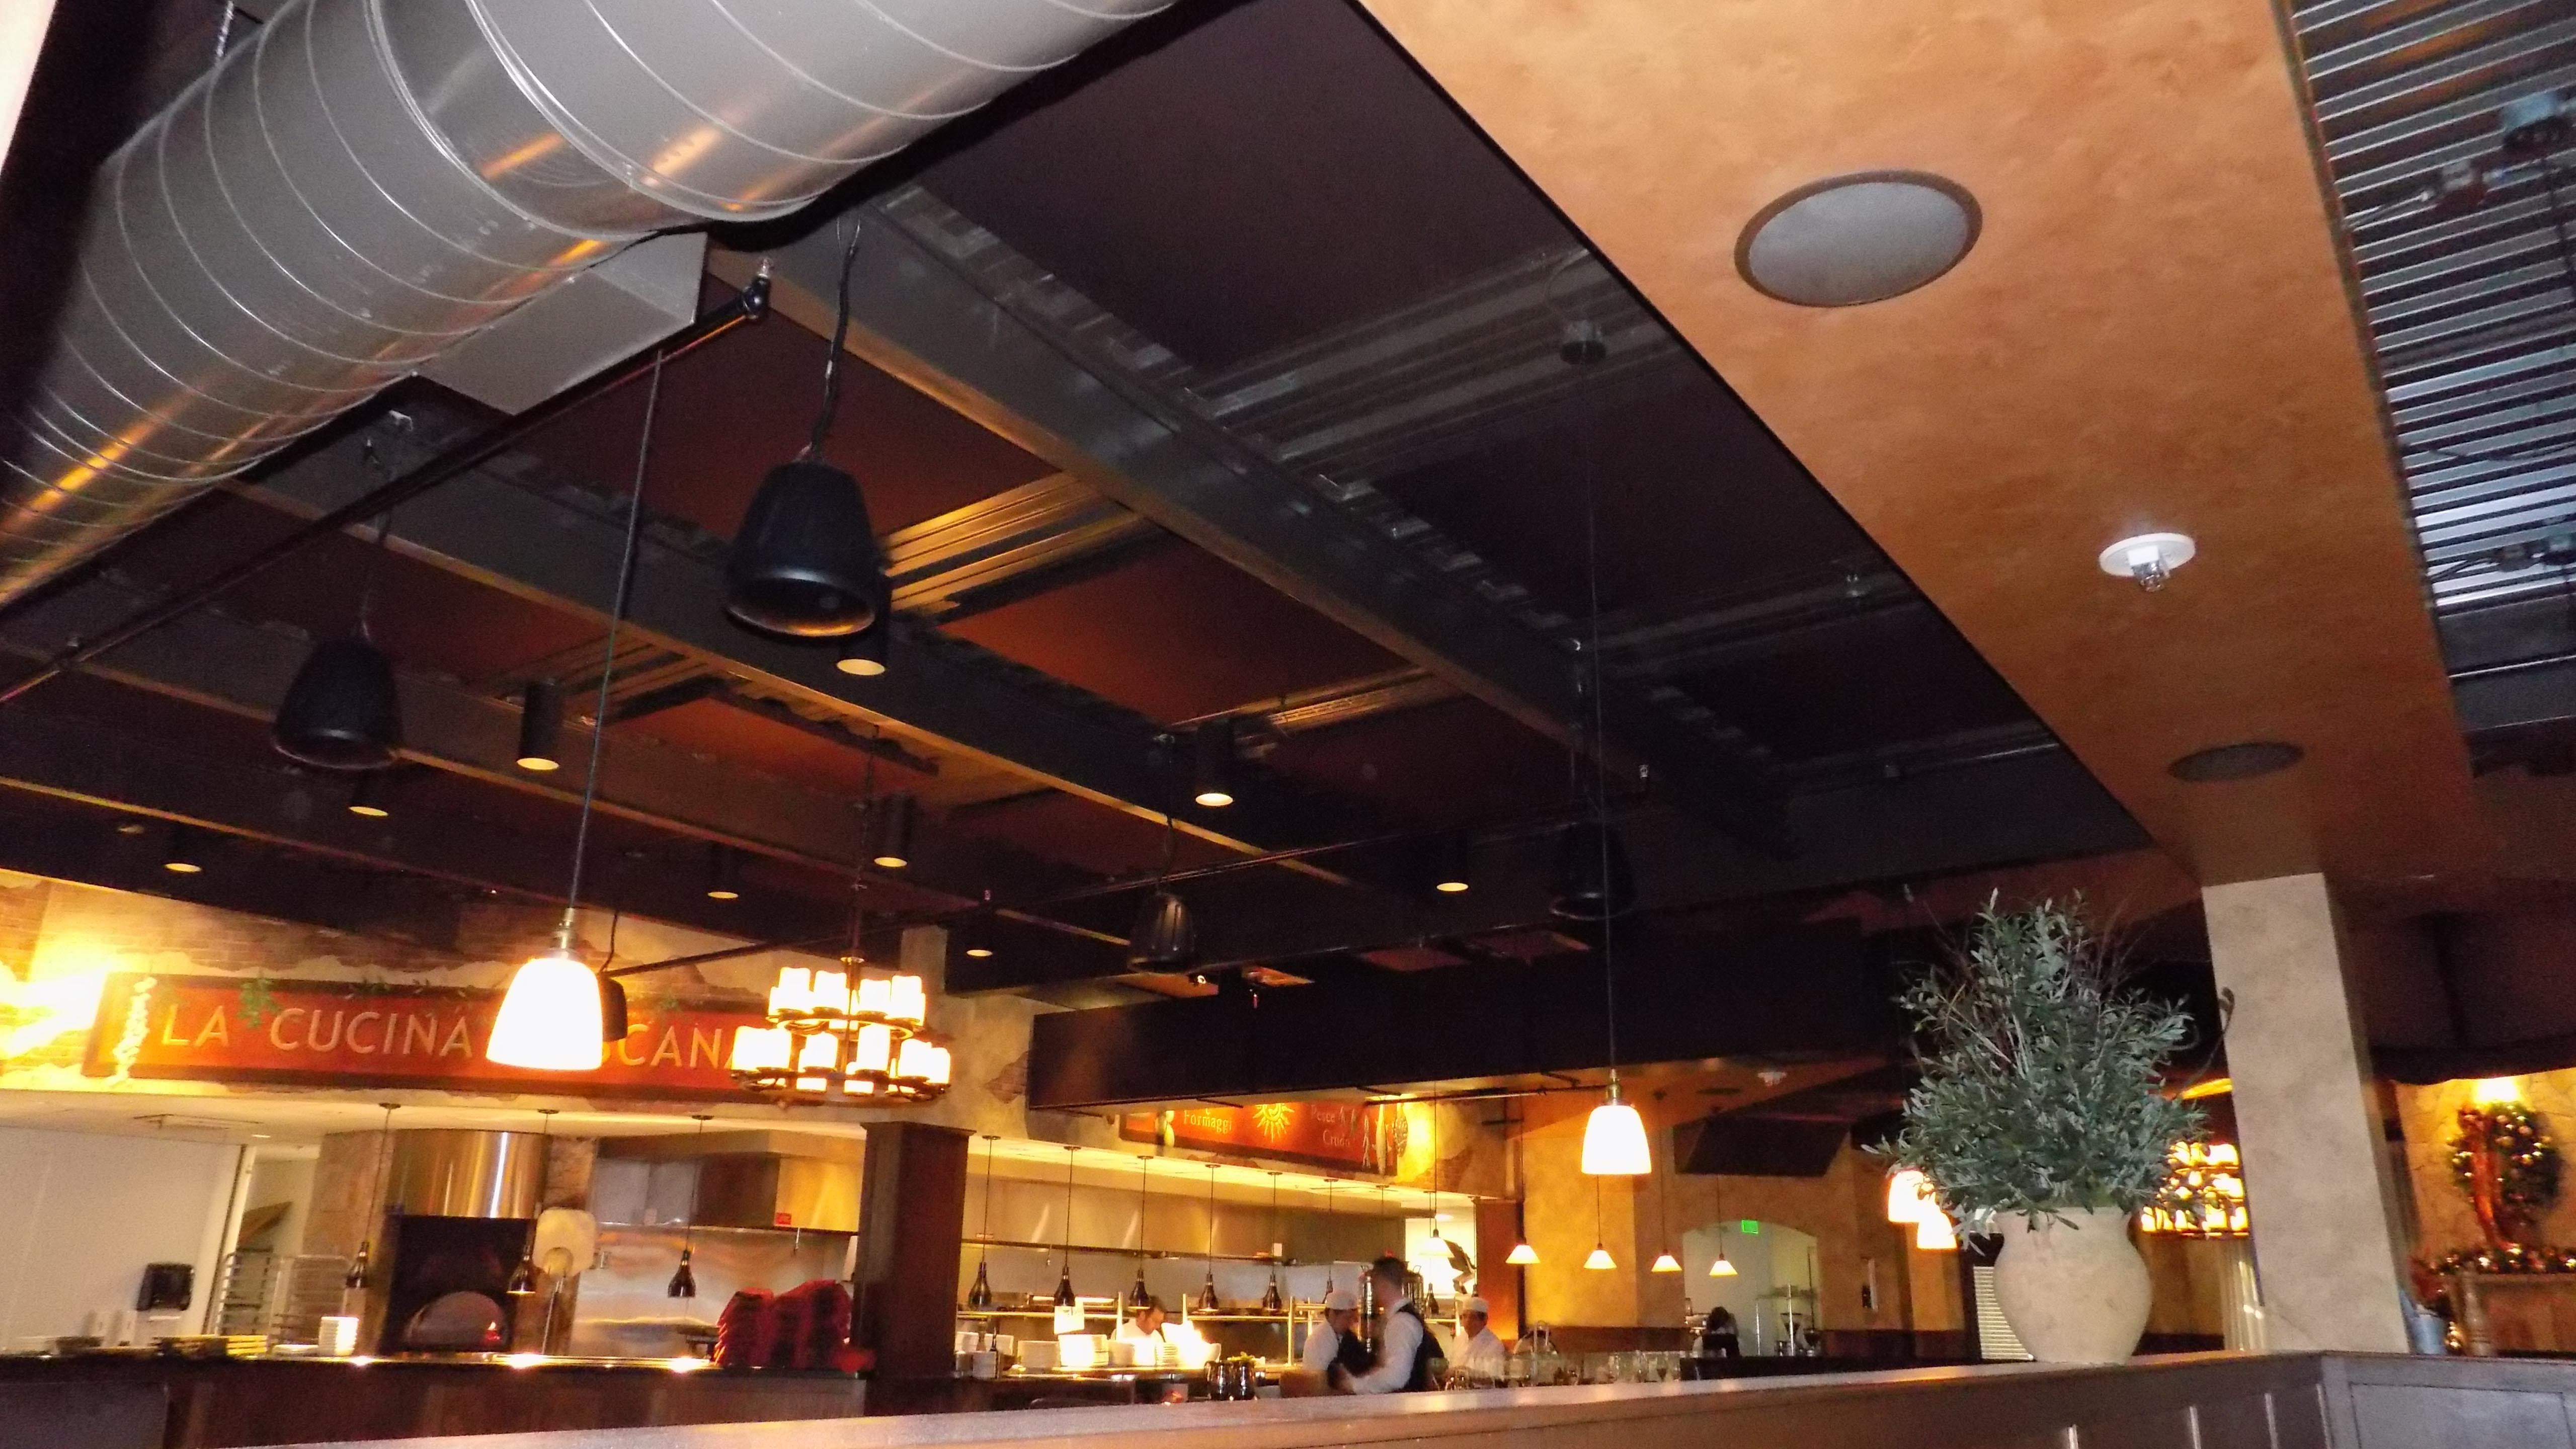 Cucina Restaurant Burlington Soundproofing Reduces Reverberation Time In Restaurant